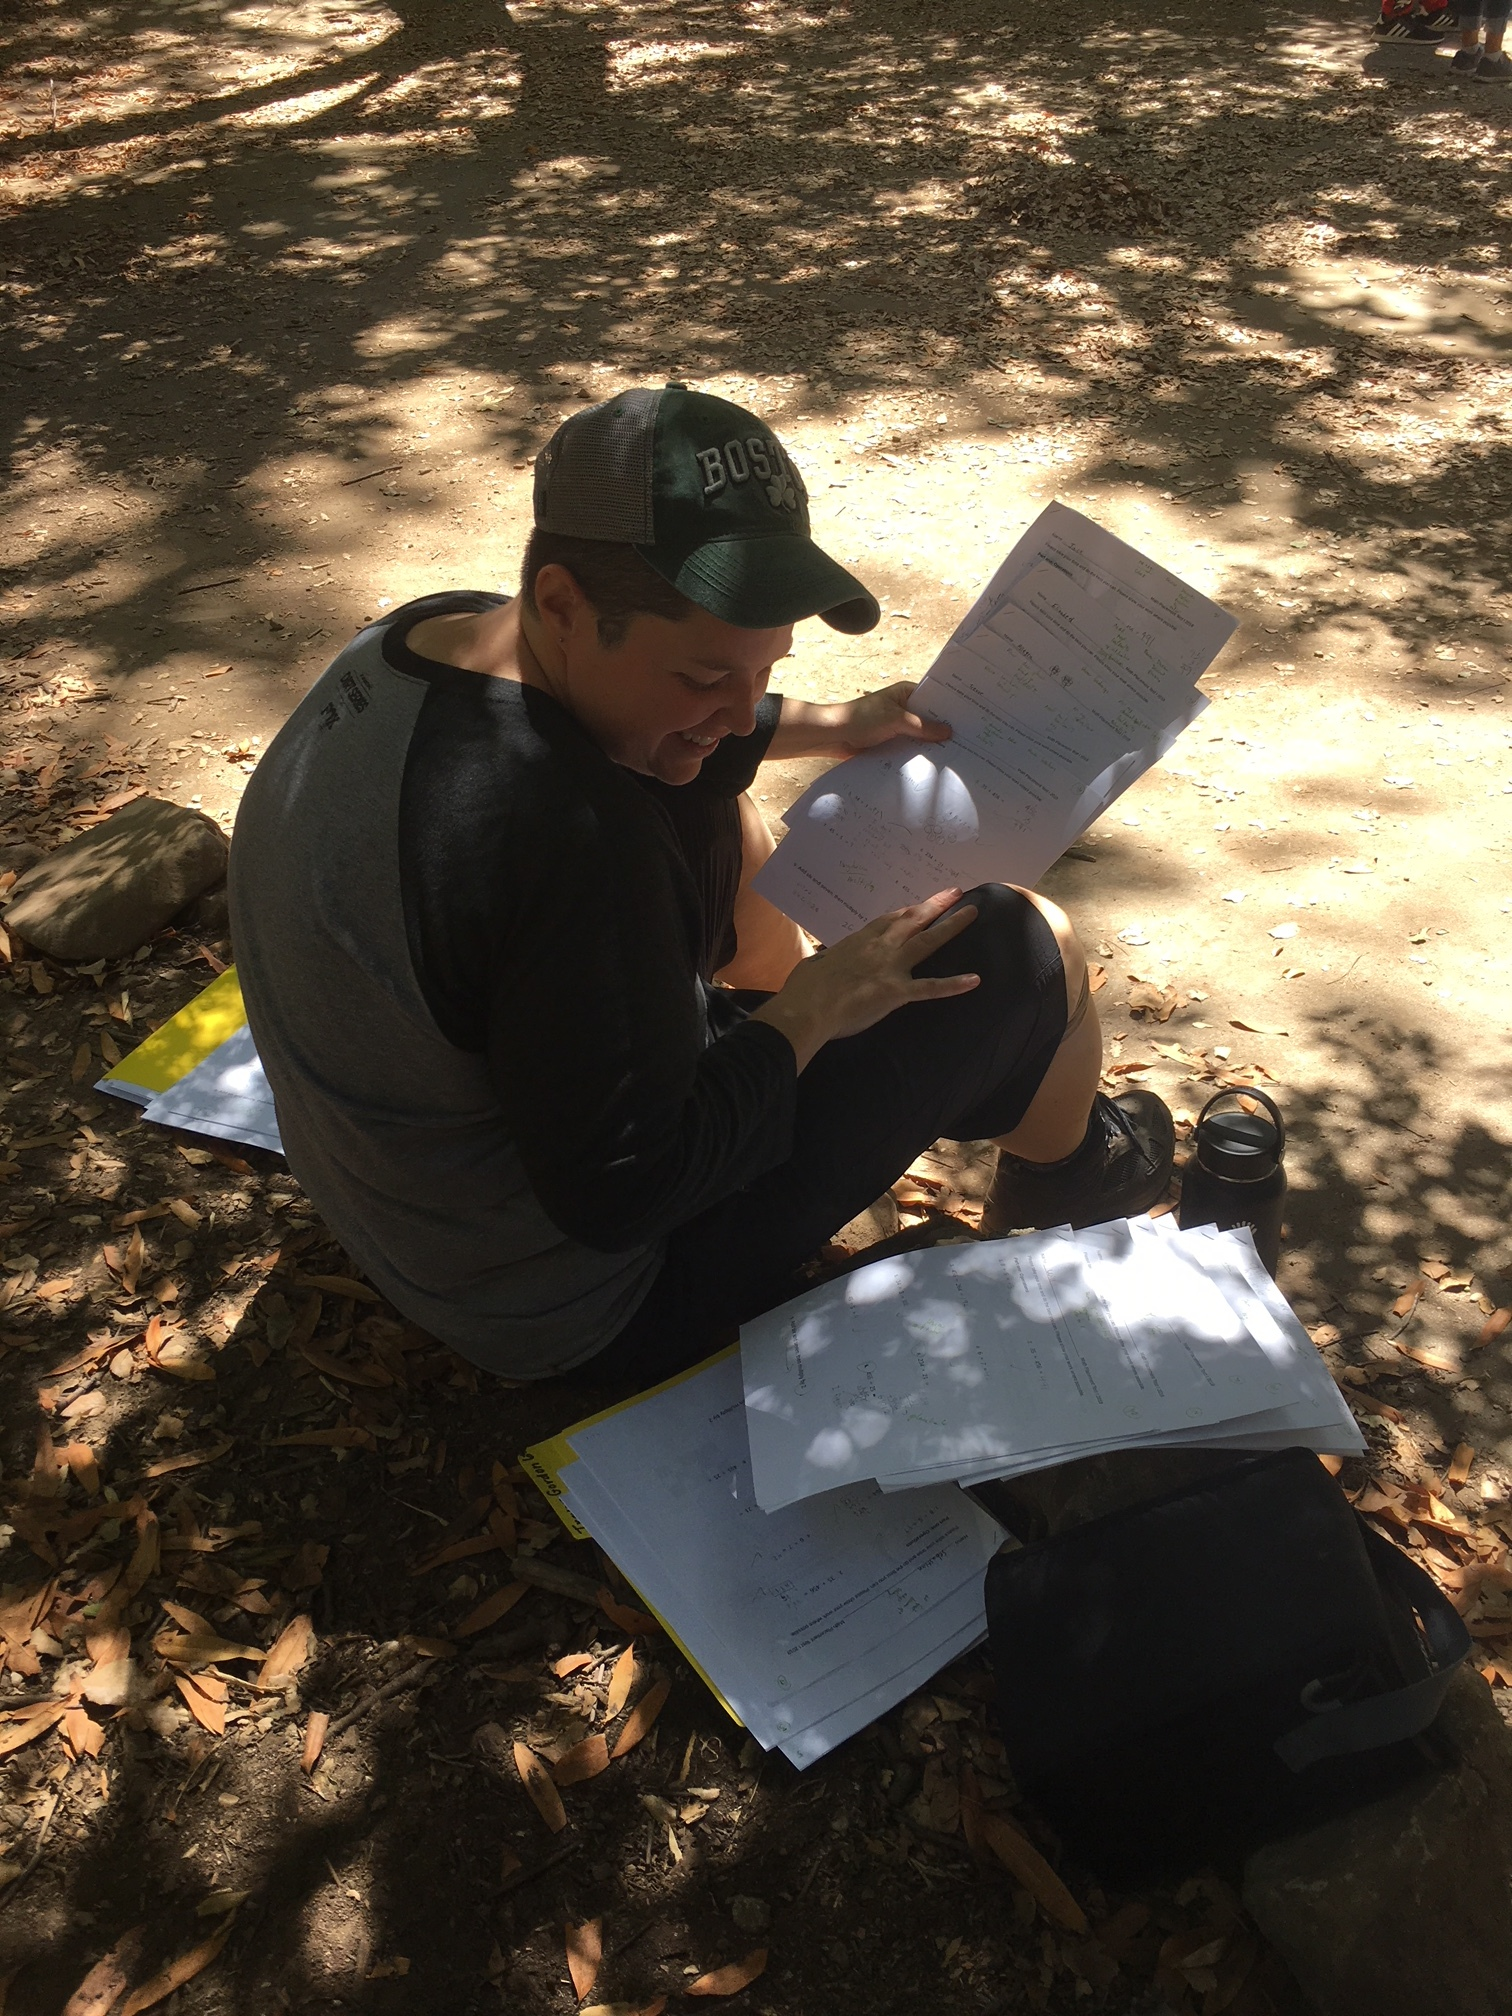 Katie grading math assessments in nature!